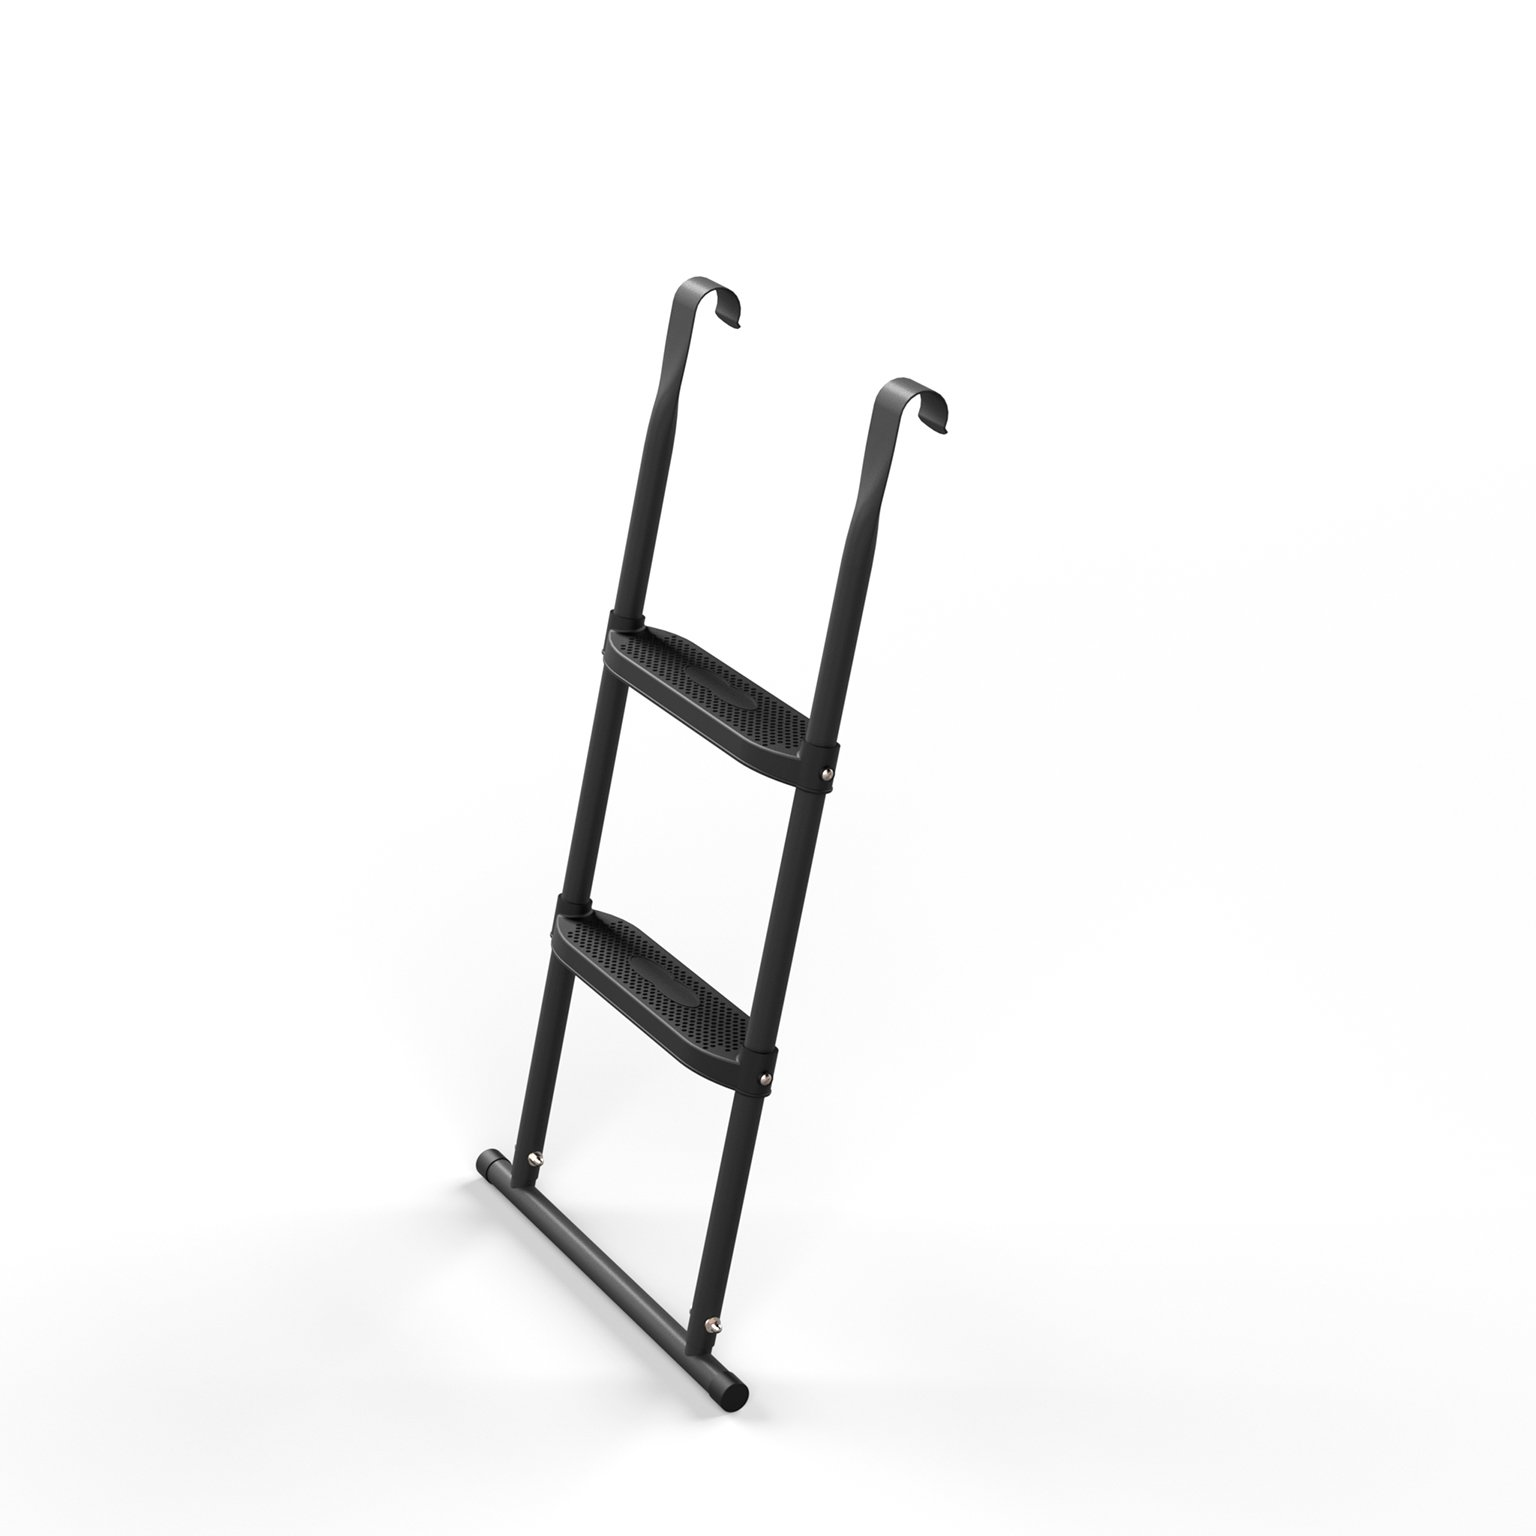 Acon Air Trampoline Ladder (Fits Other Brands) by Acon